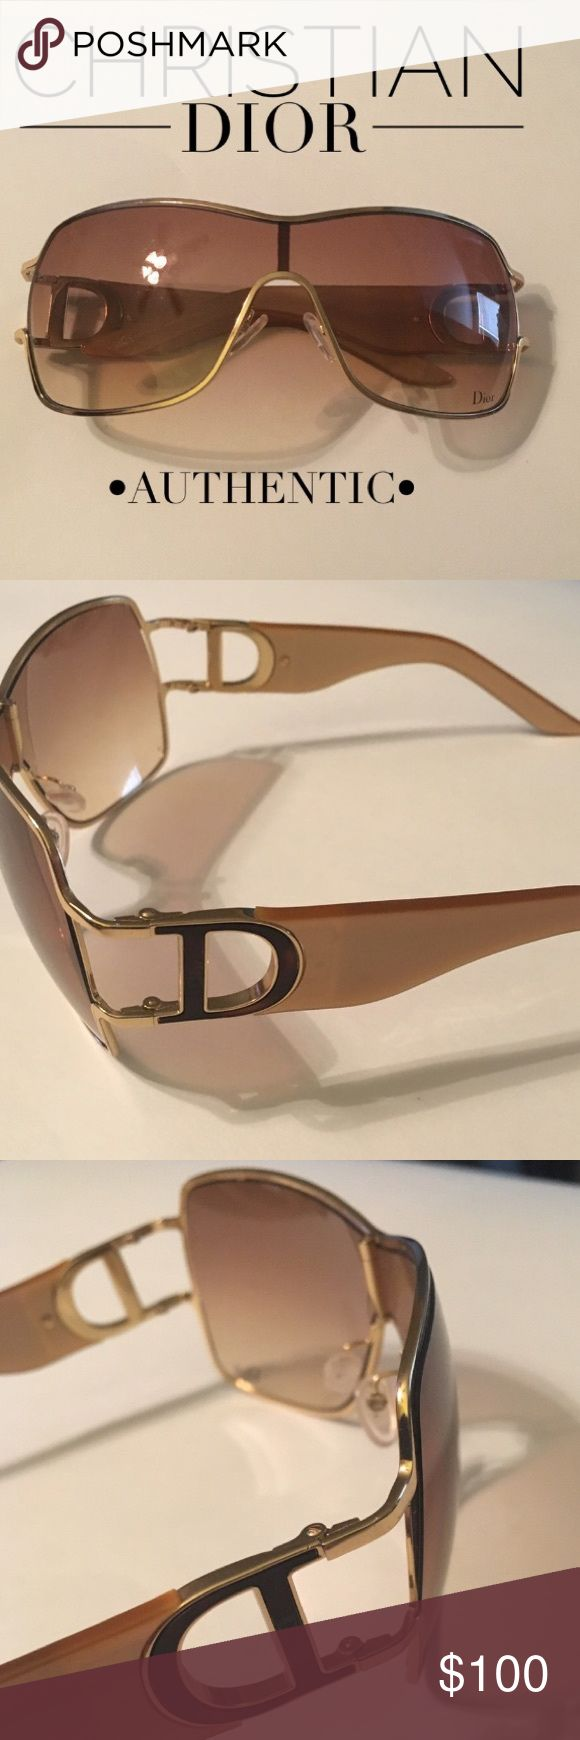 🏆Pearlized Christian Dior Gold Sunglasses 🕶 🏆Gold/Blonde Pearlized Christian Dior Sunglasses 🕶 • Excellent Condition • minimal scratches if any • 100% Authentic • purchased in Dior Boutique in Las Vegas • sorry, no boxes, cases, dustcloths or bags included • fast shipping • Dior Accessories Sunglasses